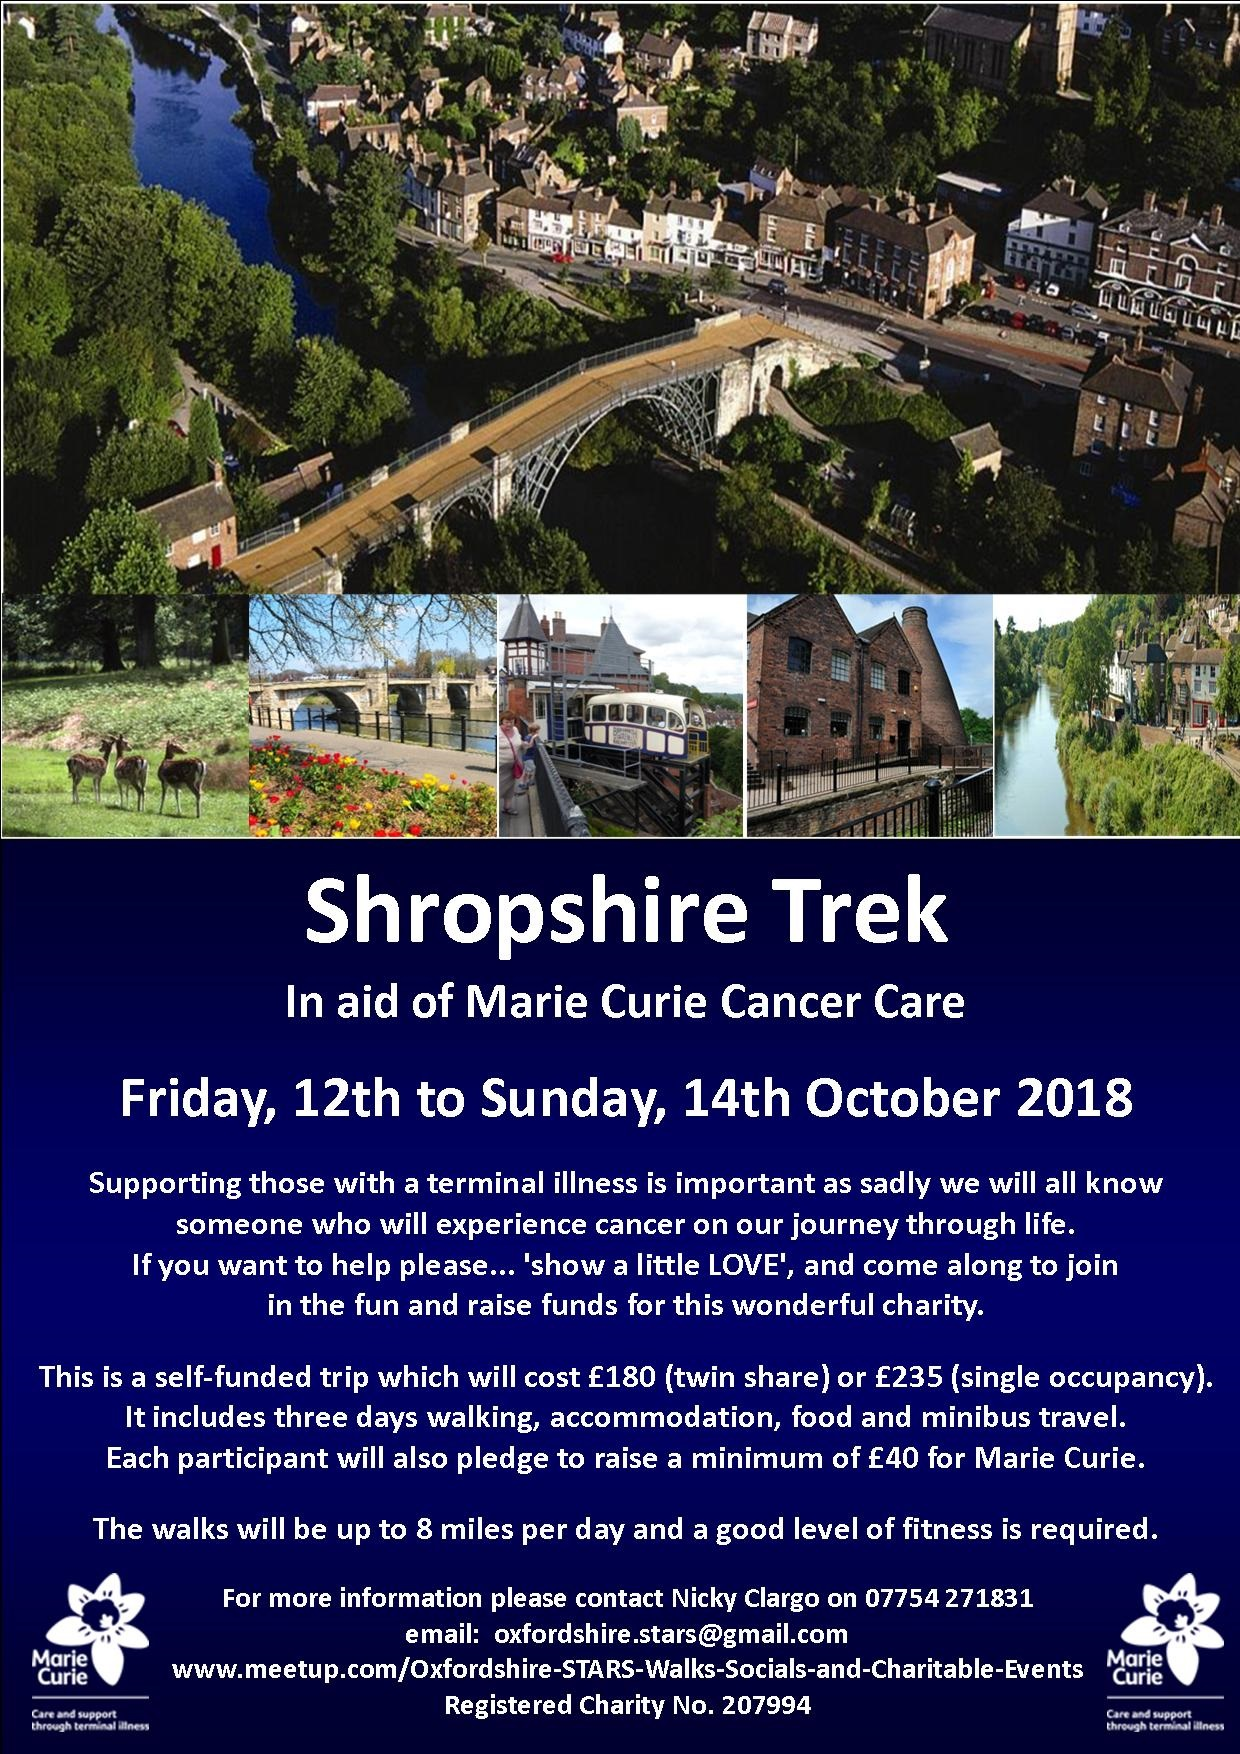 Shropshire Trek in aid of Marie Curie Cancer Care